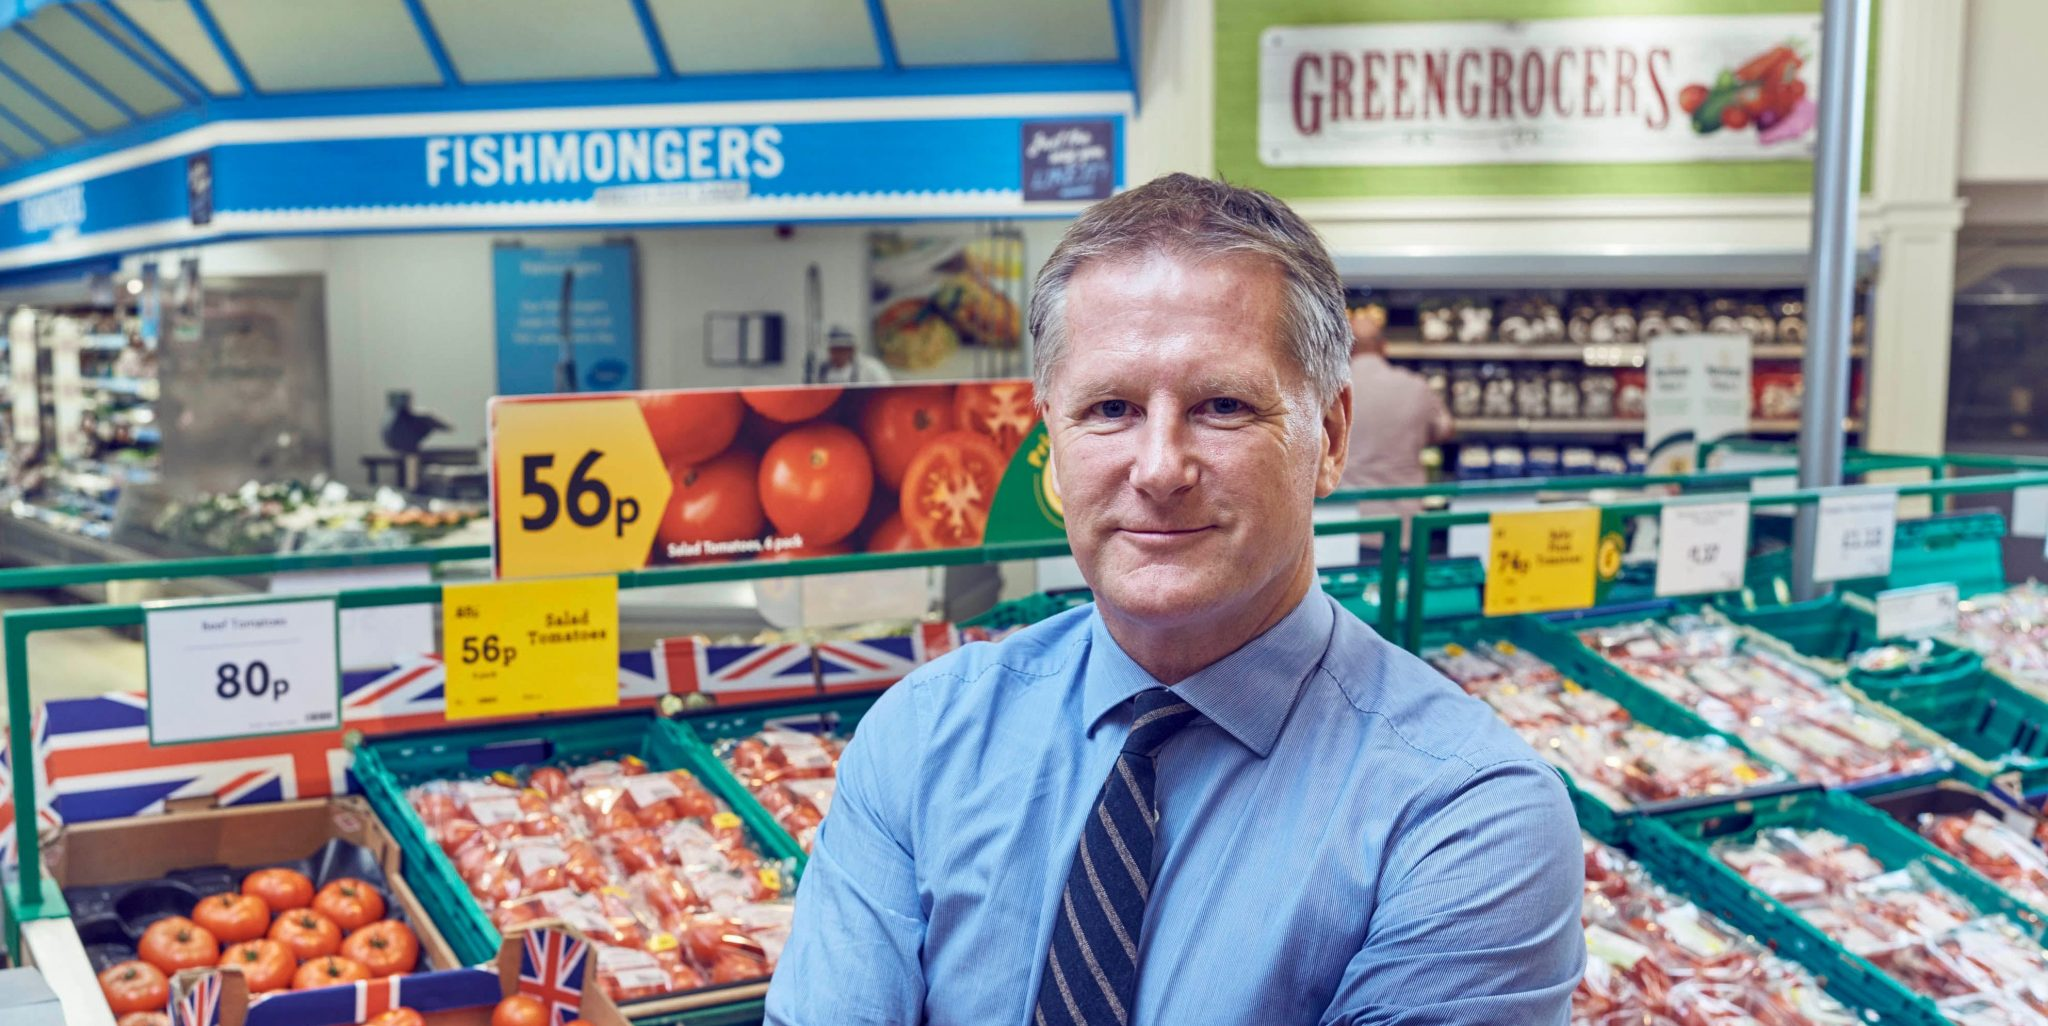 Morrisons' boss Dave Potts is talking up sustainable farming